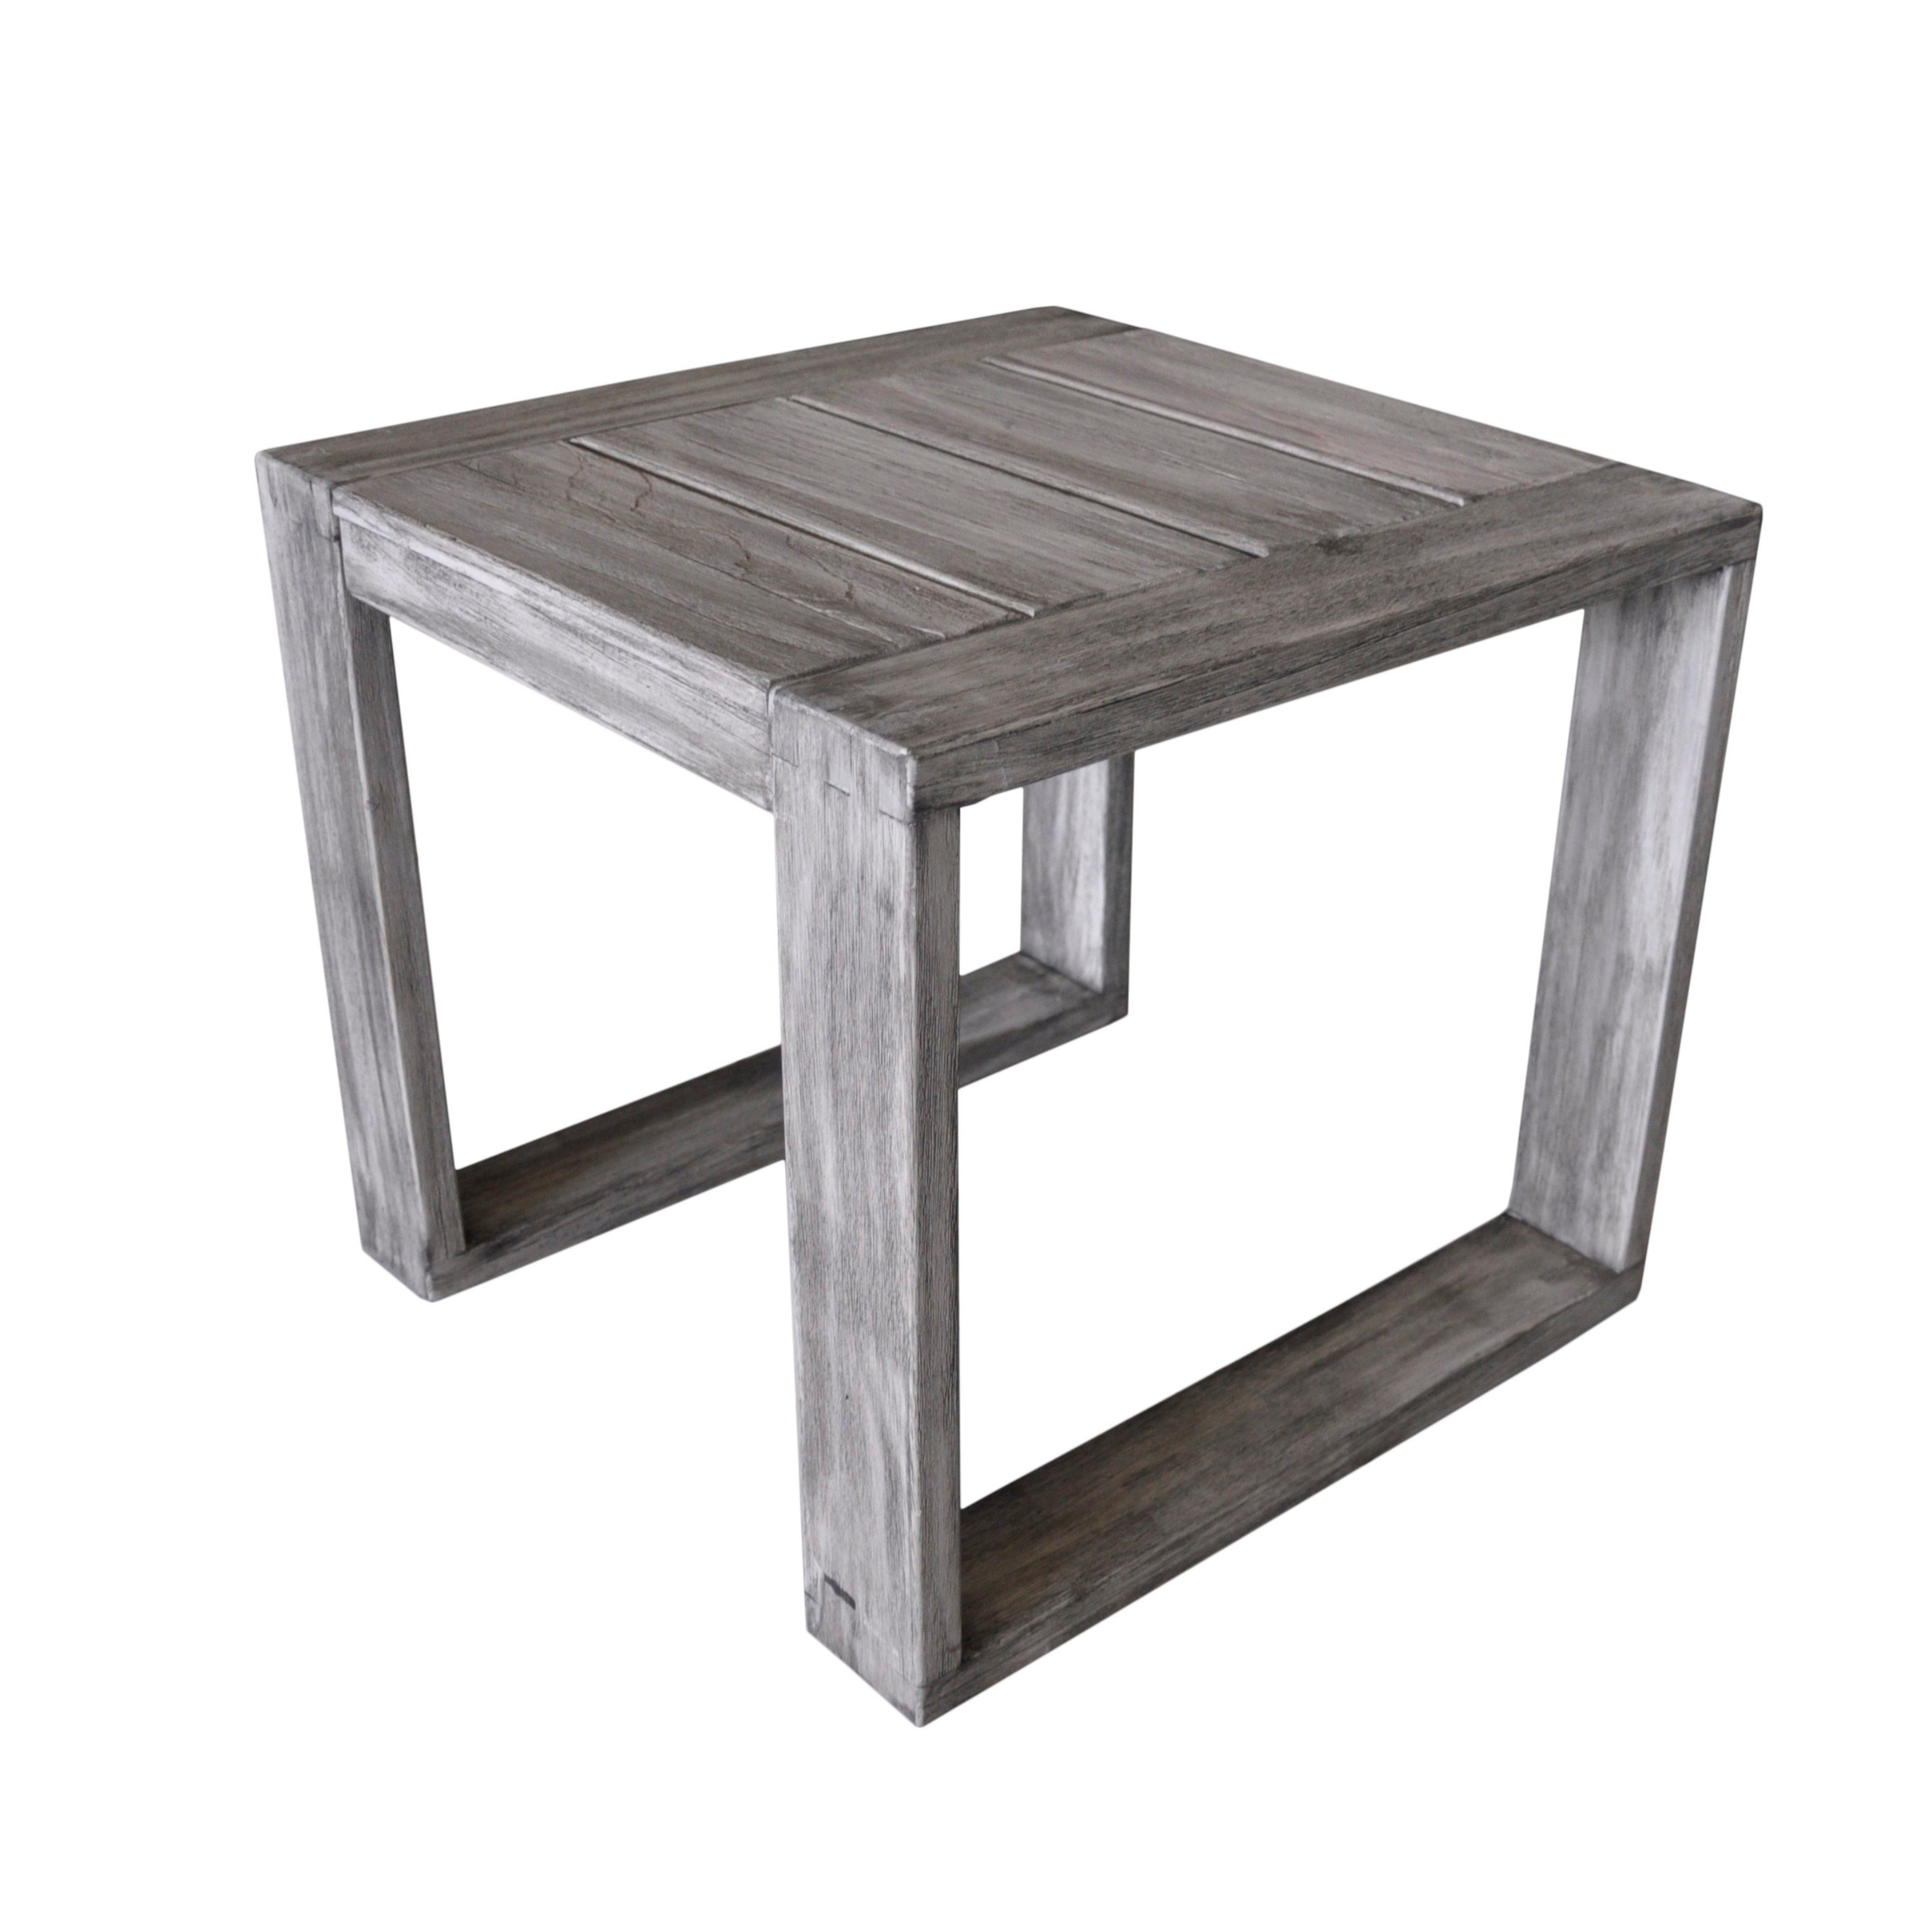 havenside home mamaroneck grey teak outdoor side table free courtyard casual driftwood gray north shore shipping today round white metal shelby accent chest dorm ideas knoll ikea